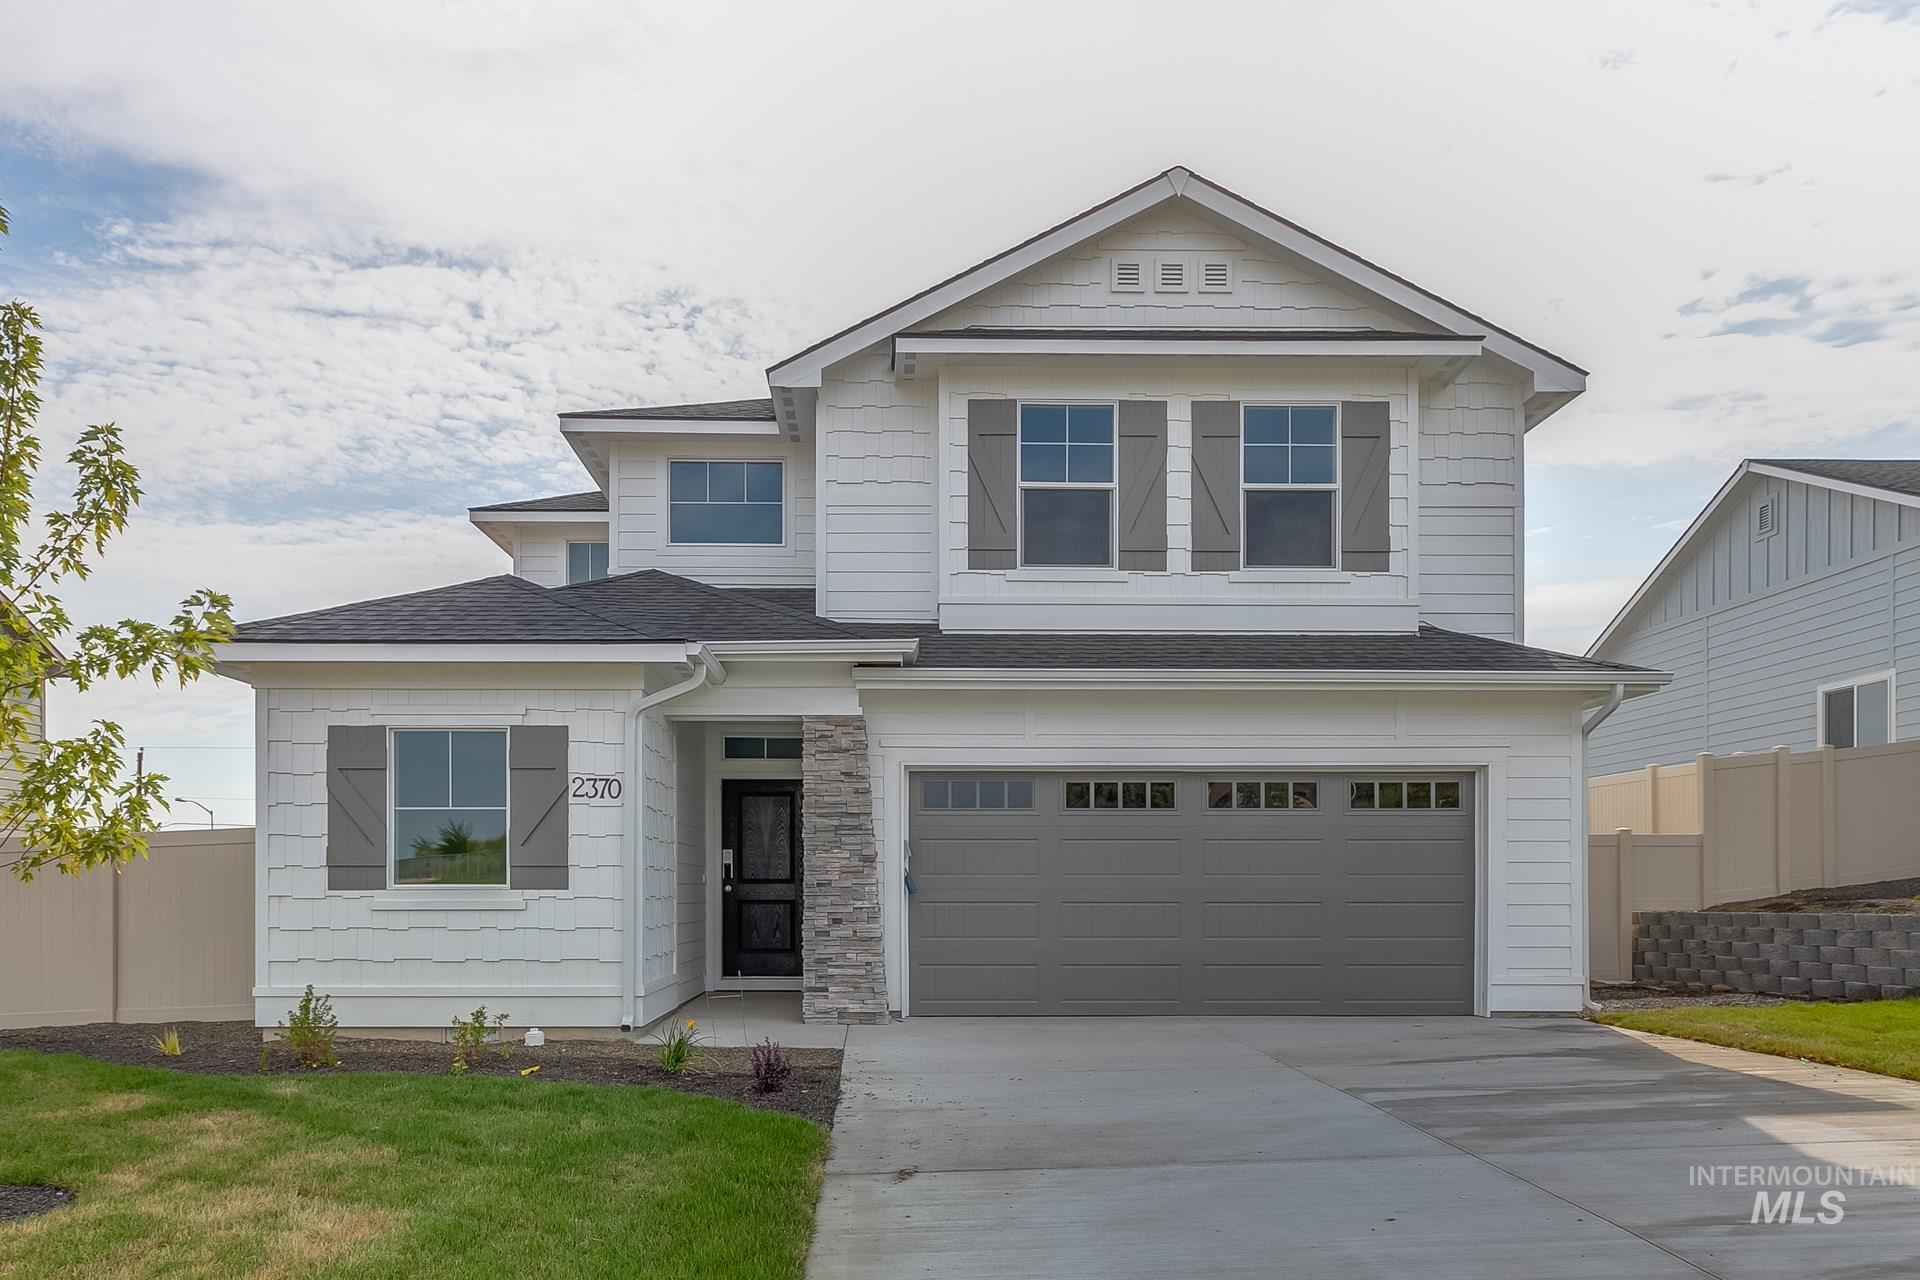 4391 W Sunny Cove St Property Photo - Meridian, ID real estate listing